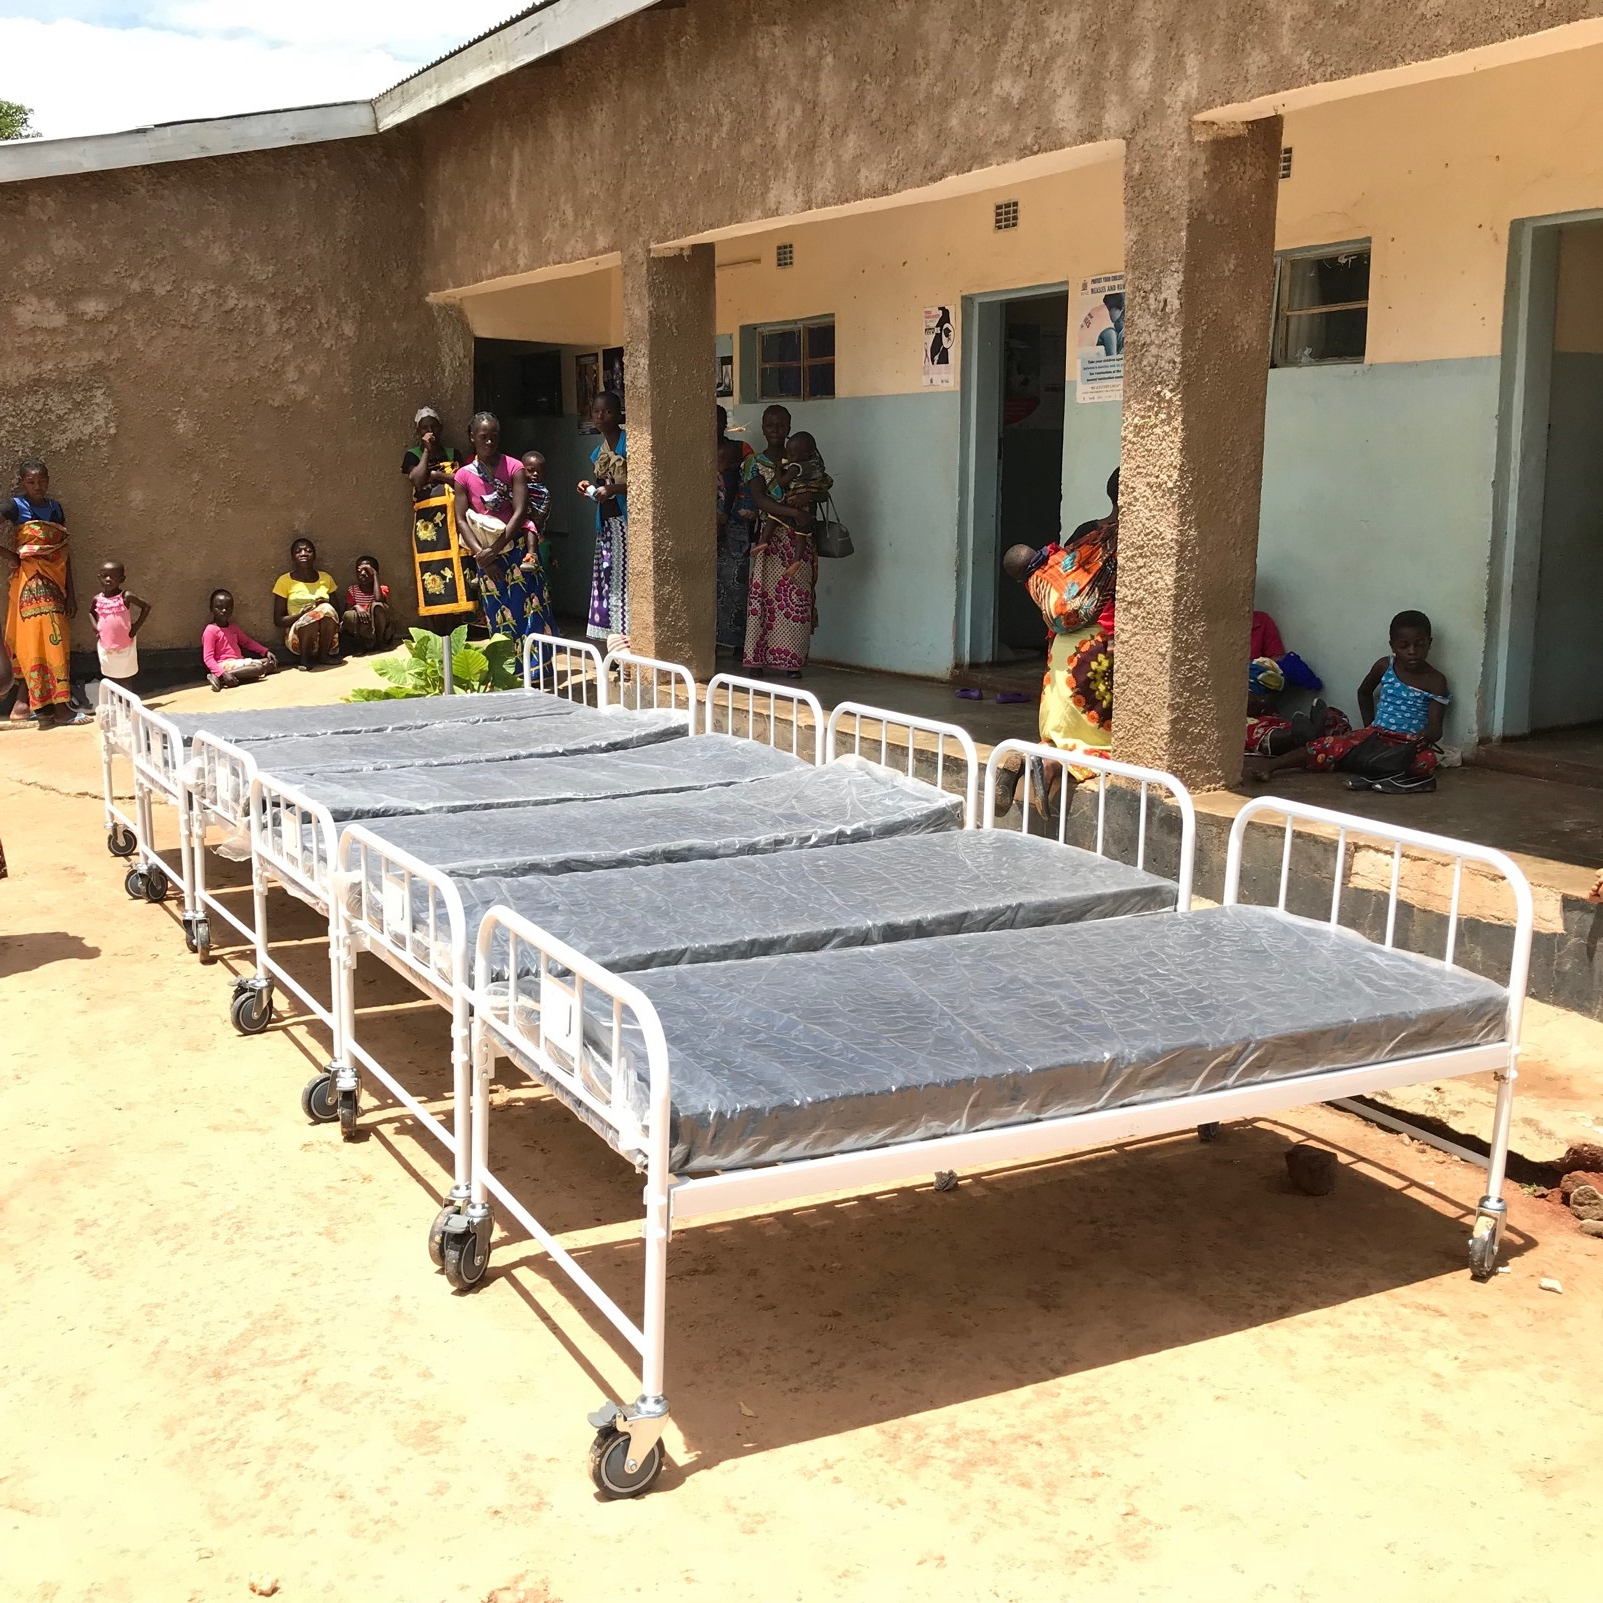 Thanks to a generous gift by Liverpool First Presbyterian, Liverpool, NY, new beds for both CCAP rural health centers were purchased. These are the six beds that were provided to the Ndaiwala Rural Health Center.